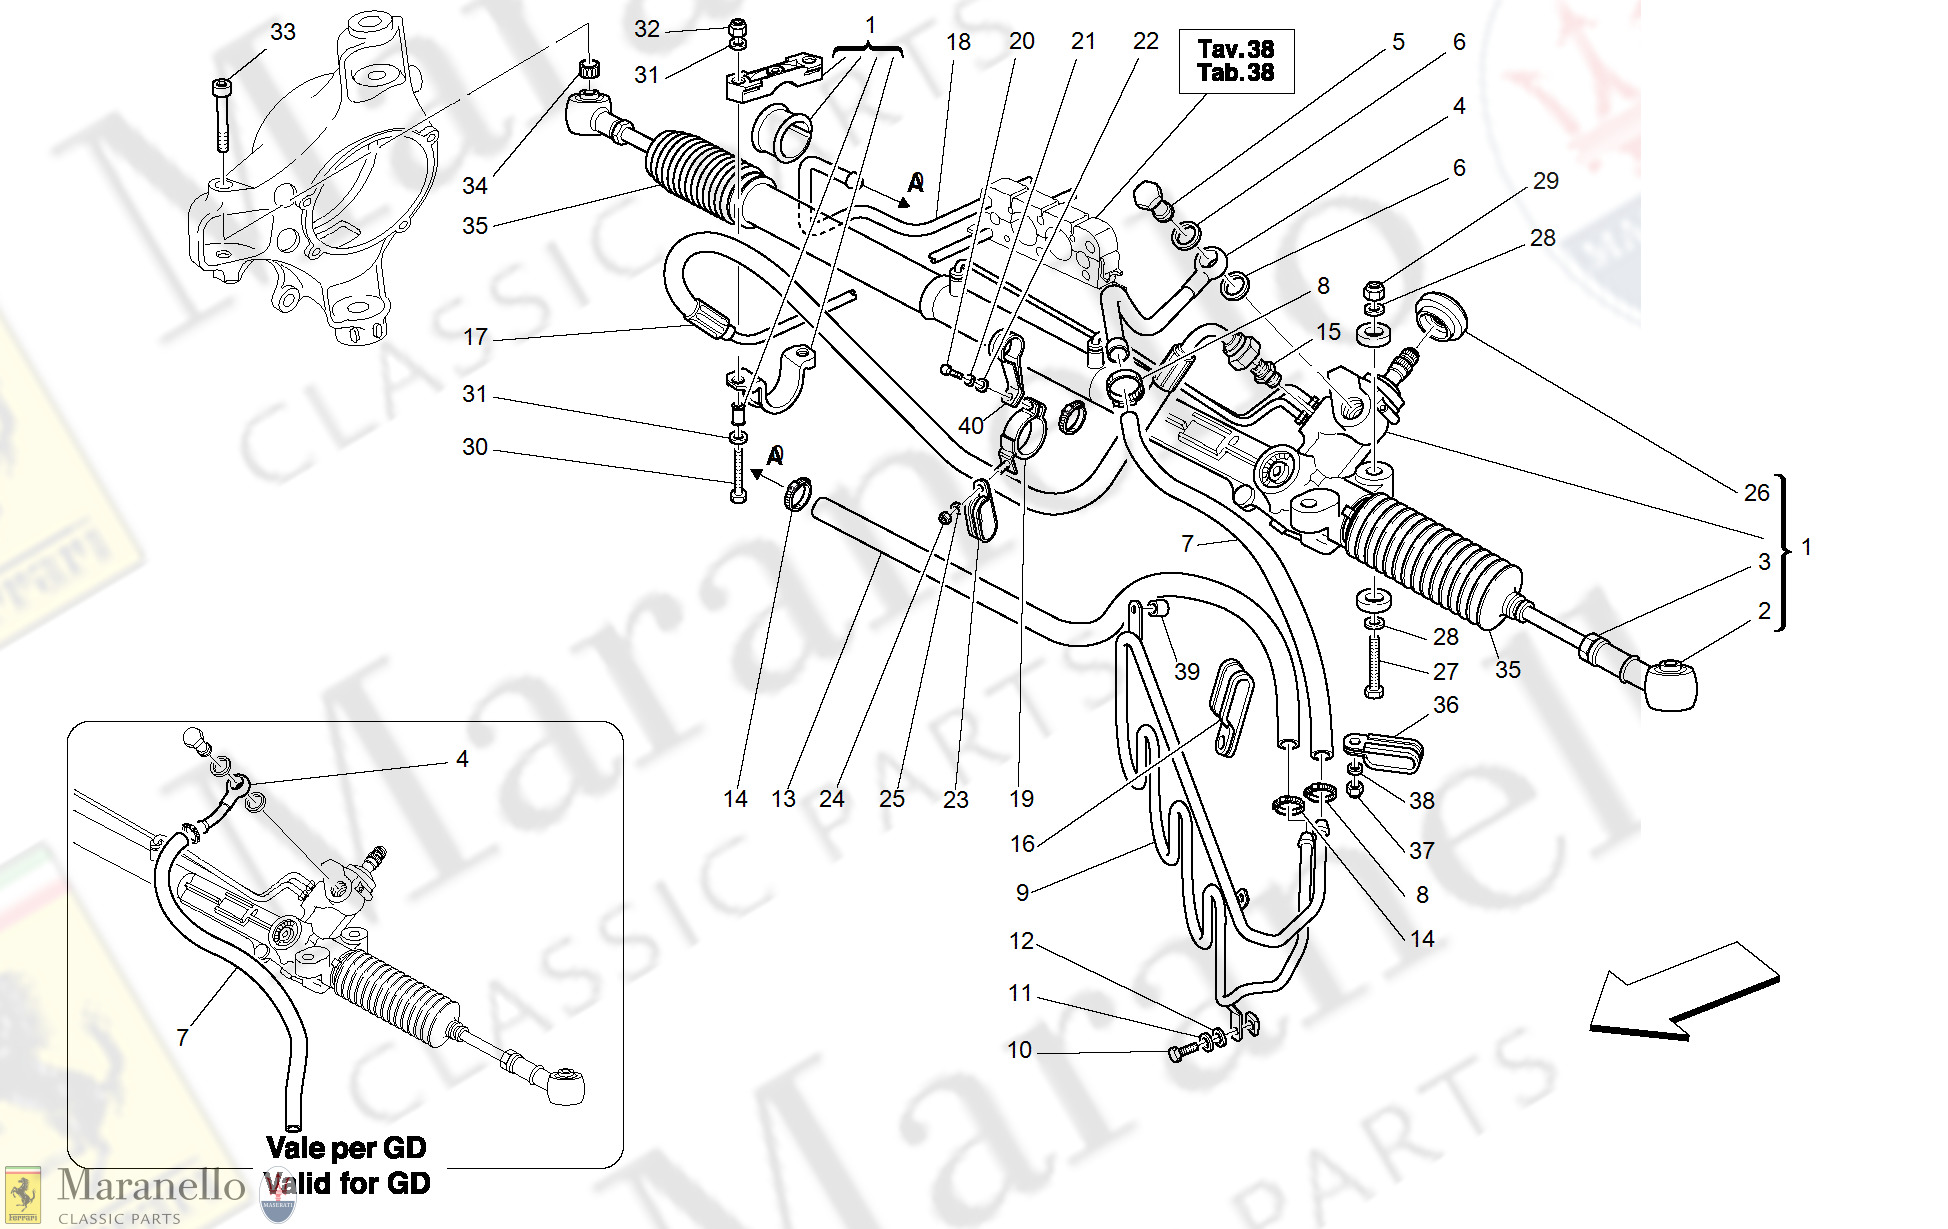 043 - Hydraulic Steering Box And Serpentine